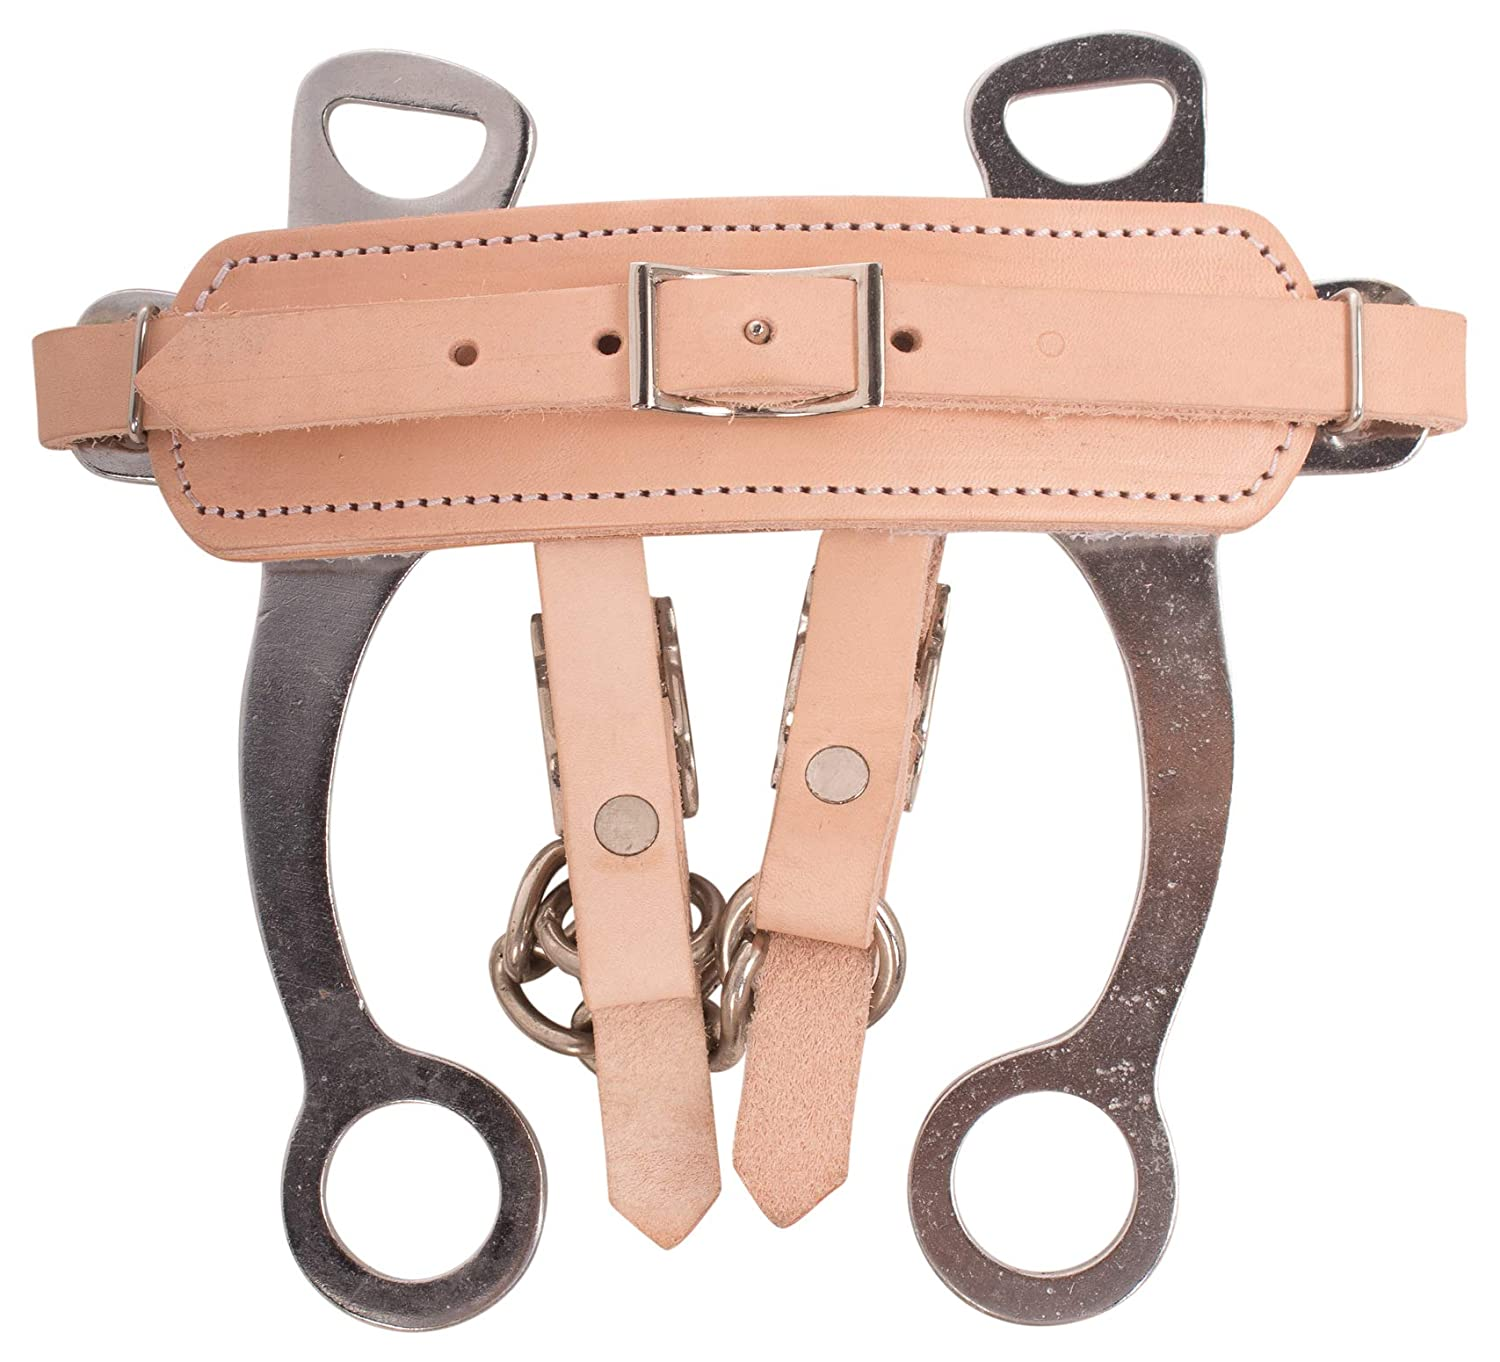 AceRugs Hackamore BRIDLES for Horses BITLESS BIT Chromed Steel Leather Padded Fleece Nose Band TACK with Curb Chain